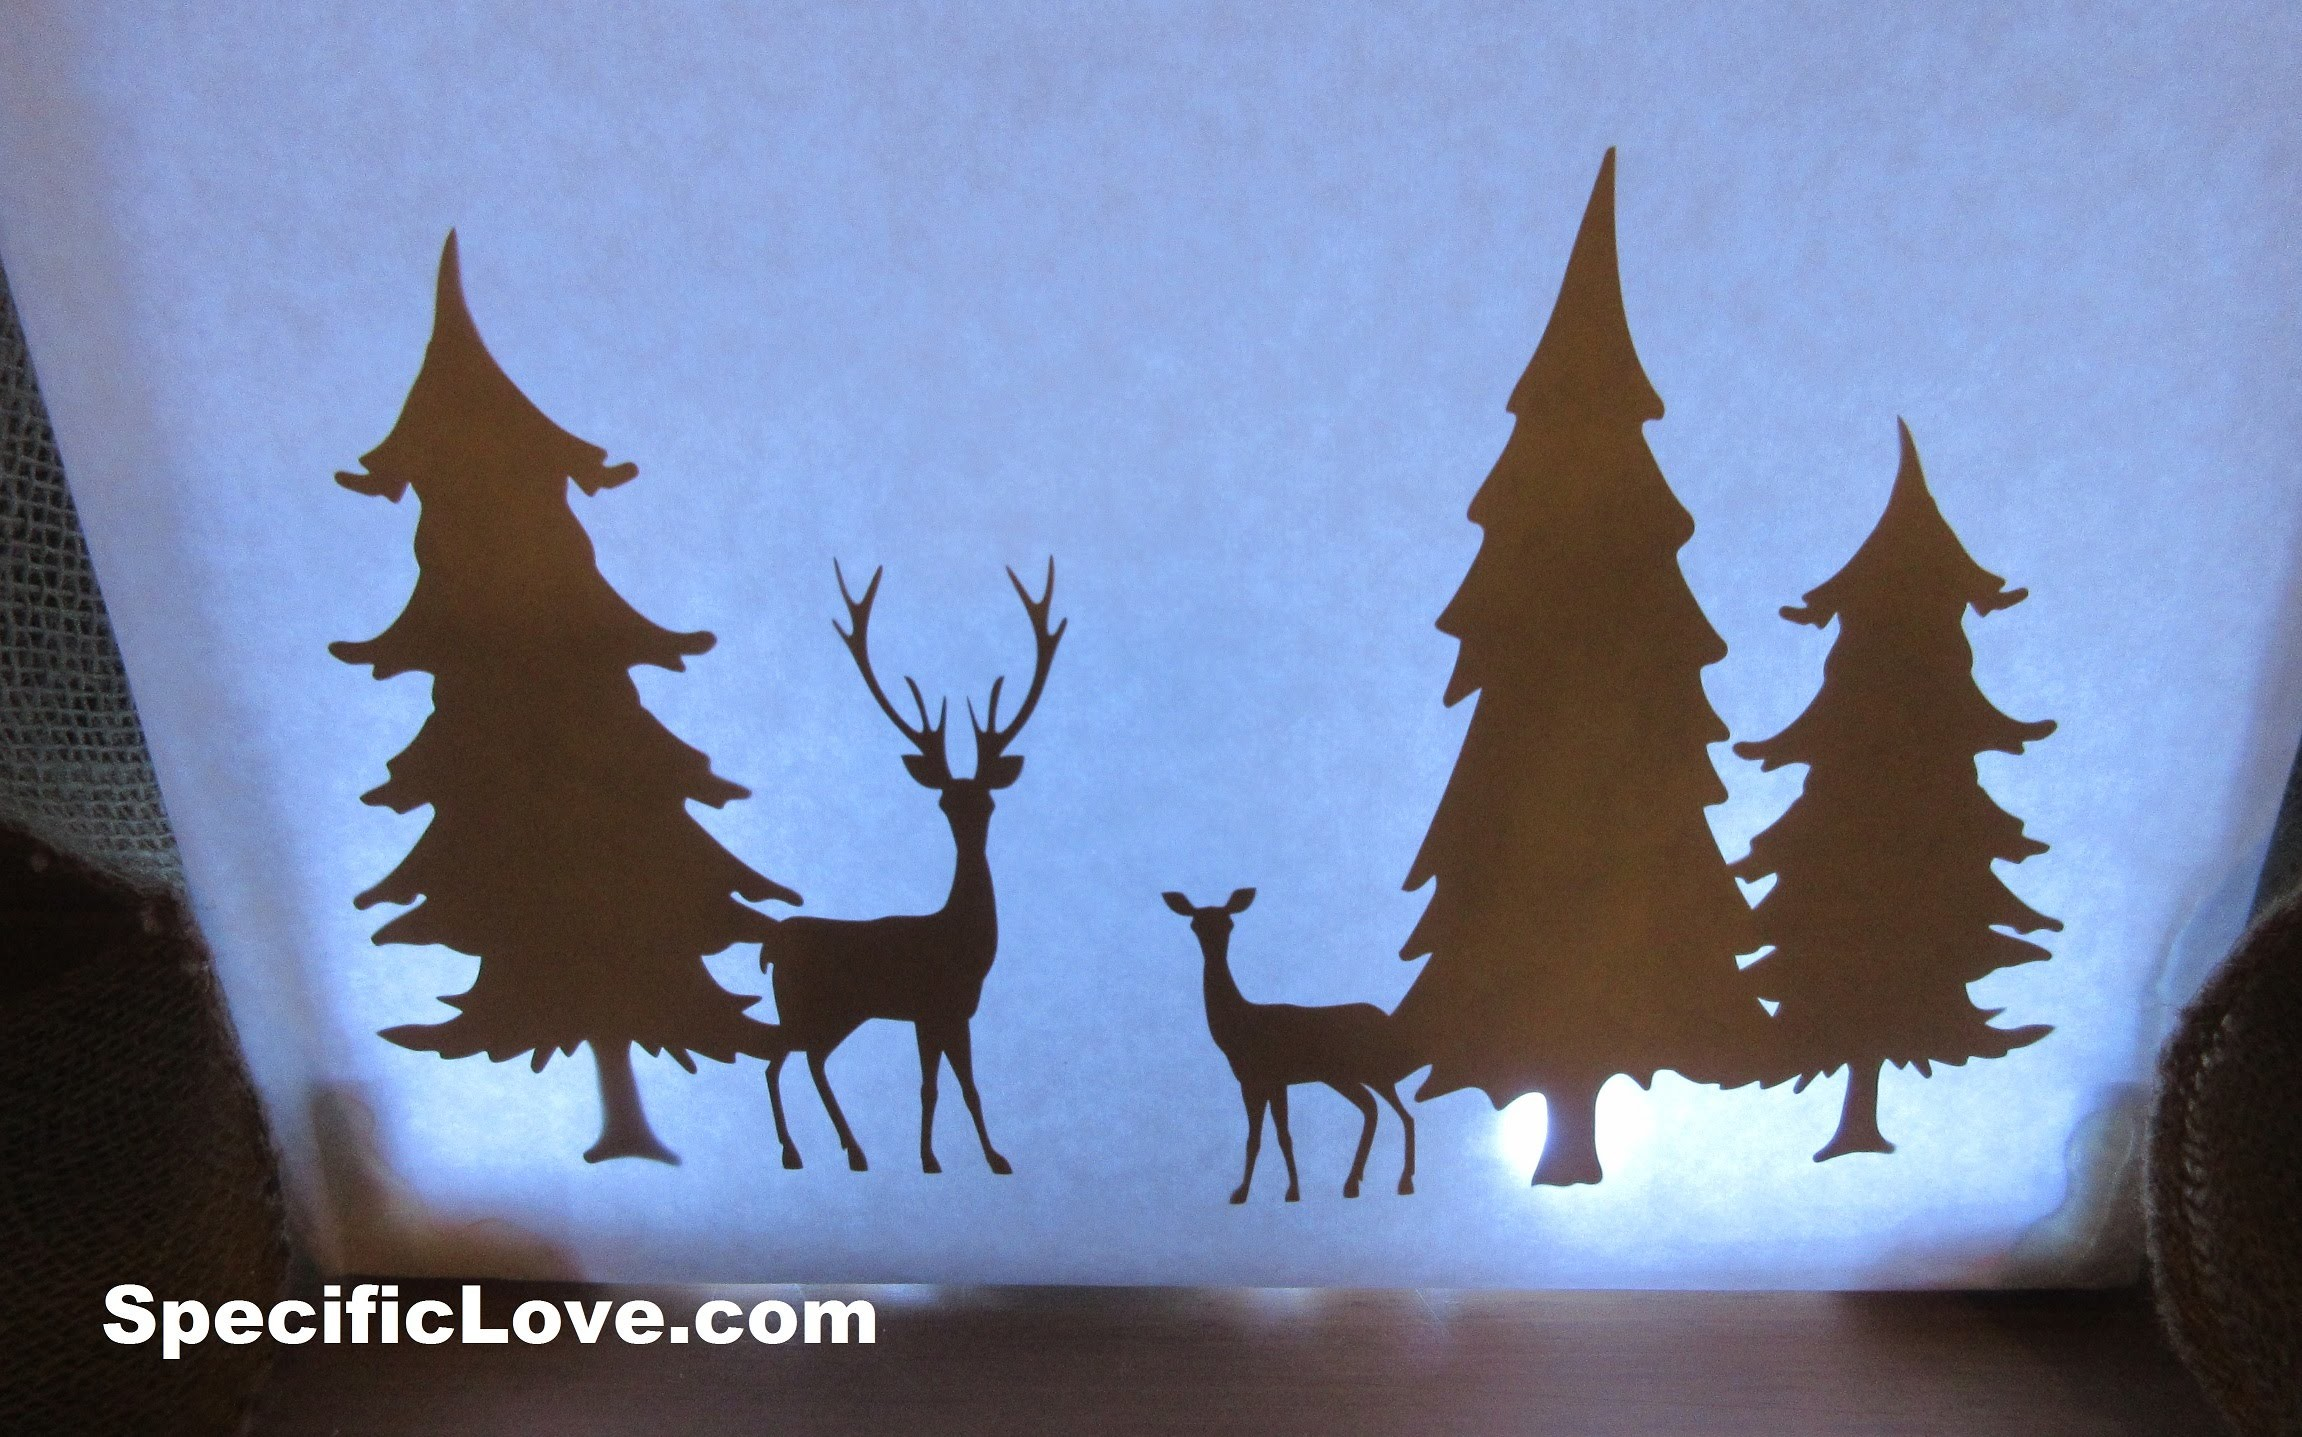 How to make a Shadow Box with PVC - Homemade DIY Christmas Crafts